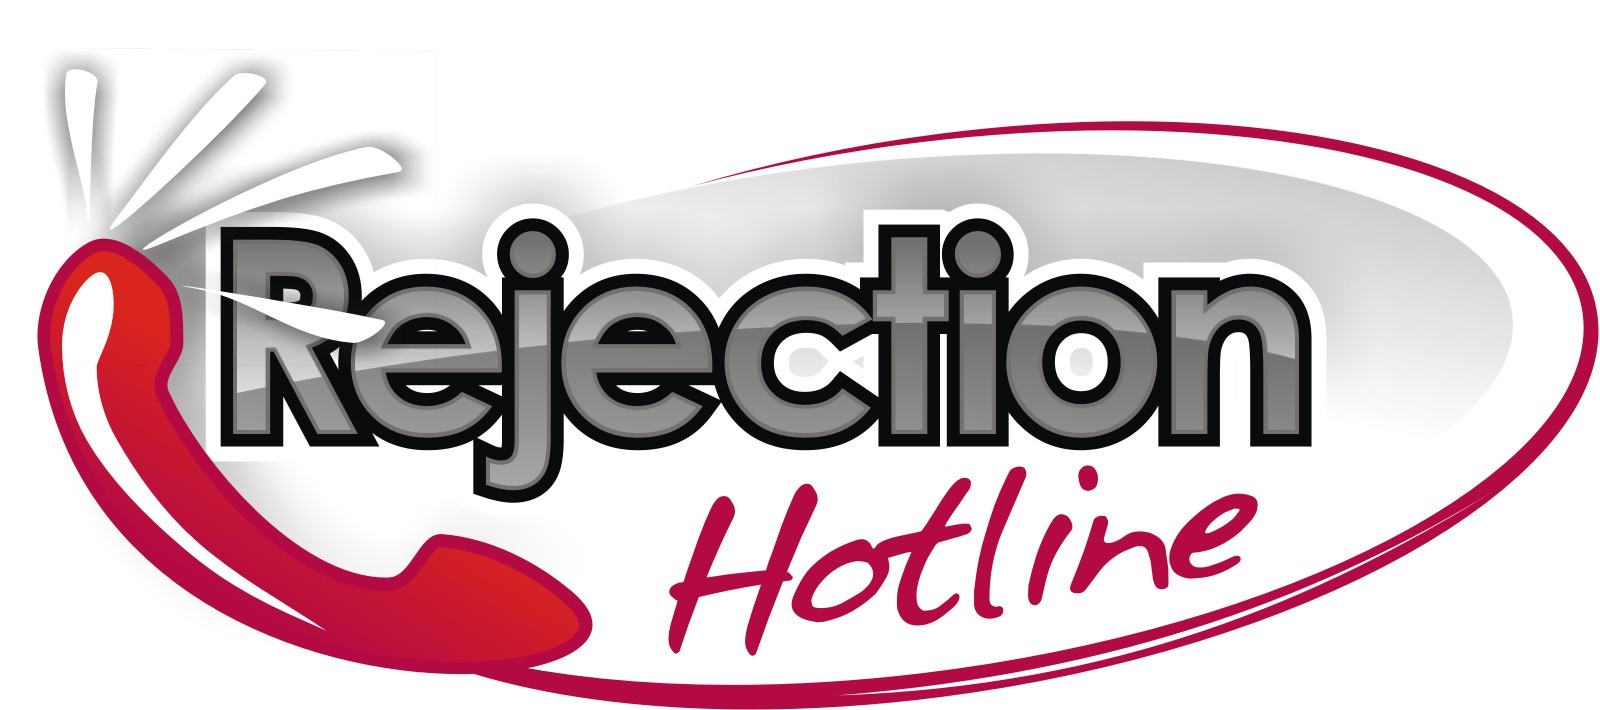 the the rejection hotline 605 475 6968 audio whatever part of